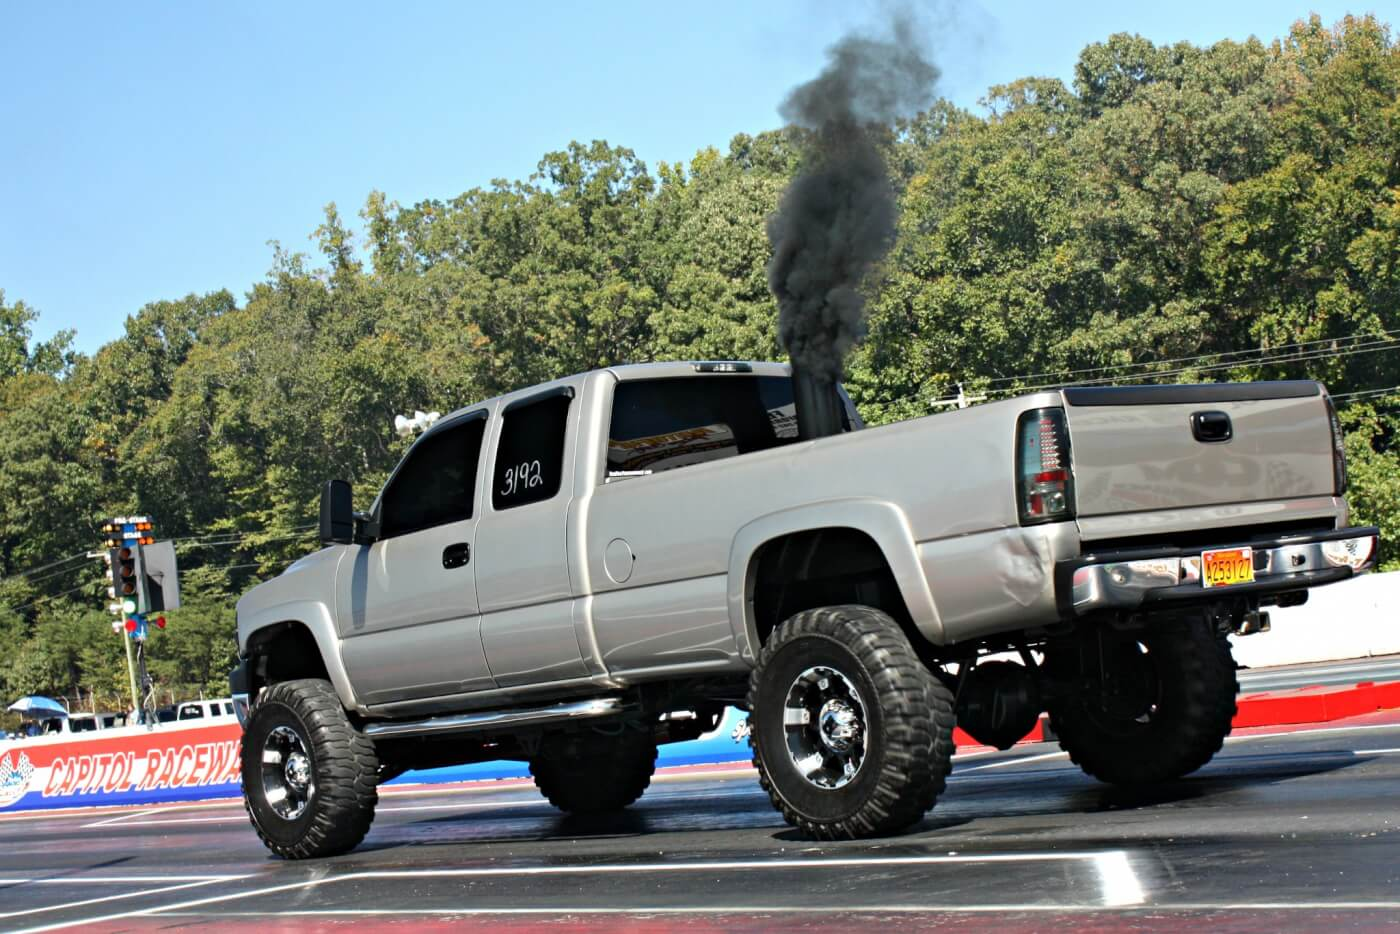 Lowered or lifted, diesel is diesel and a true bracket racer won't care about the overall e/t as it just takes a consistent truck and quick reaction time to win rounds.